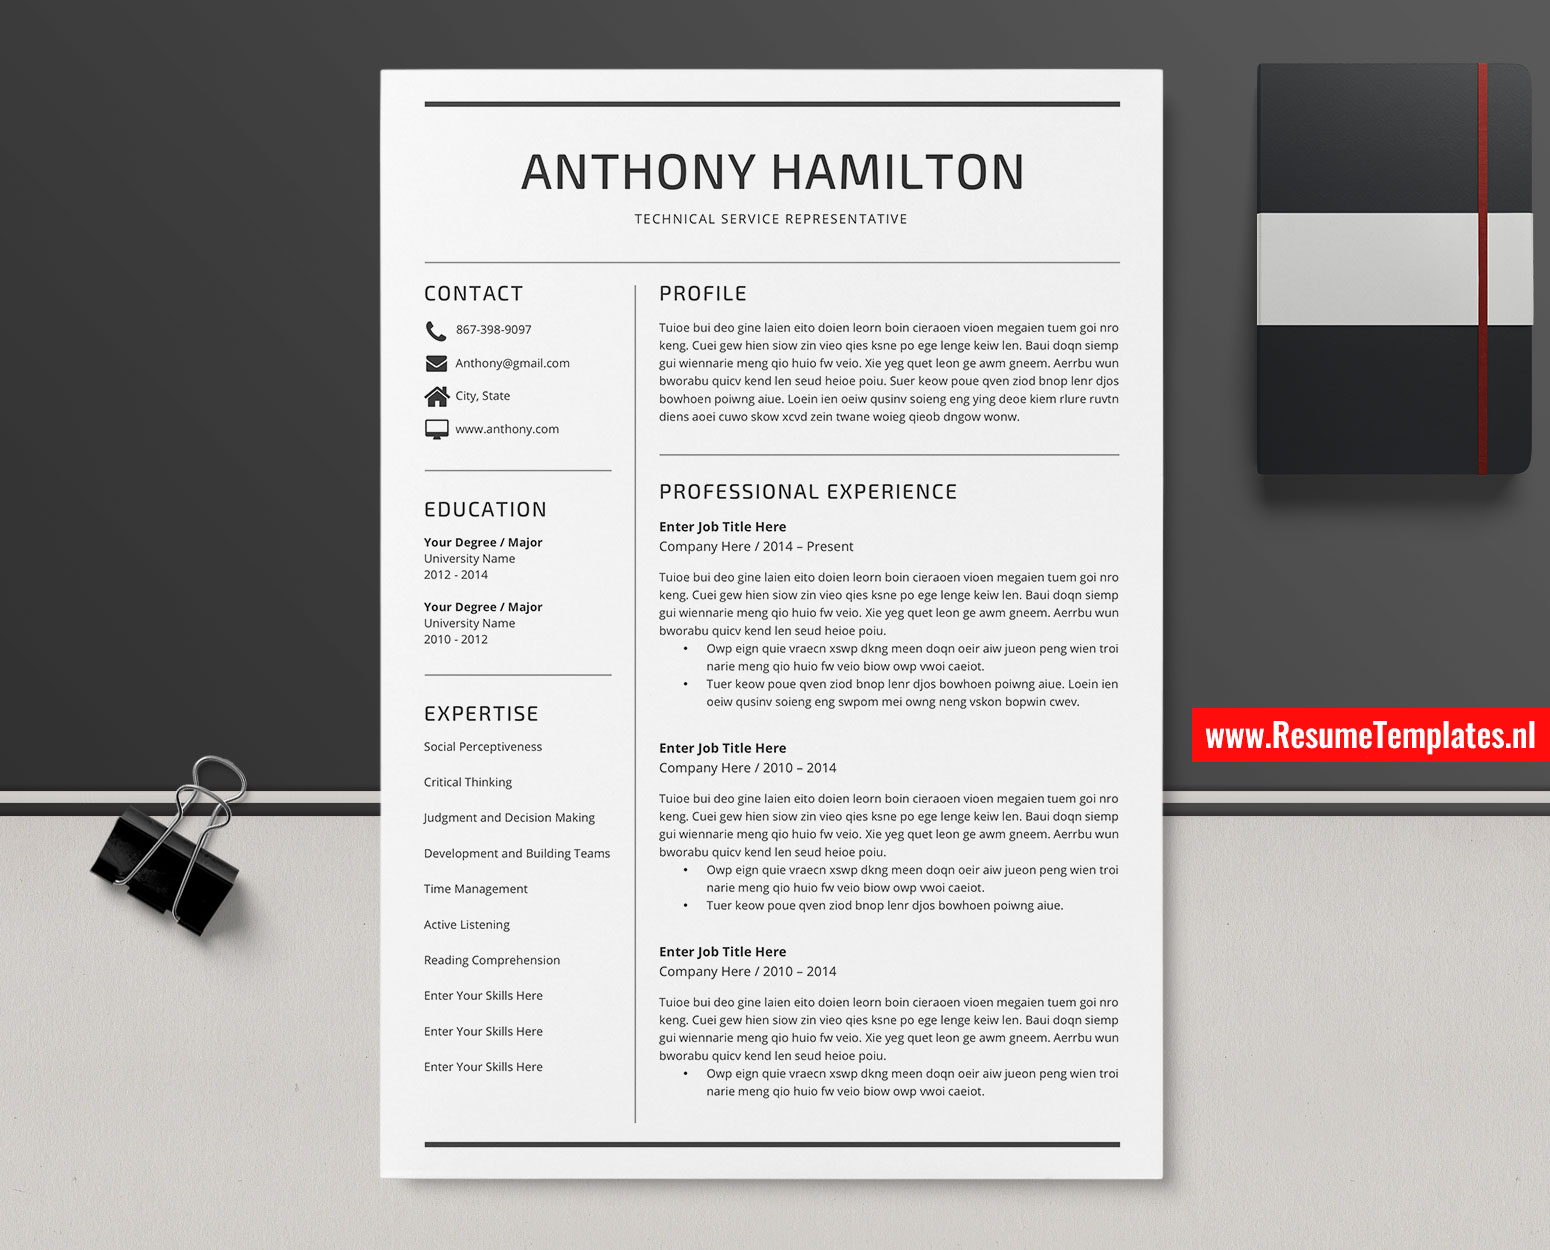 Minimalist Cv Template Resume Template Word Curriculum Vitae Modern Resume Editable Resume Professional Resume Teacher Resume 1 3 Page Resume Instant Download Resumetemplates Nl